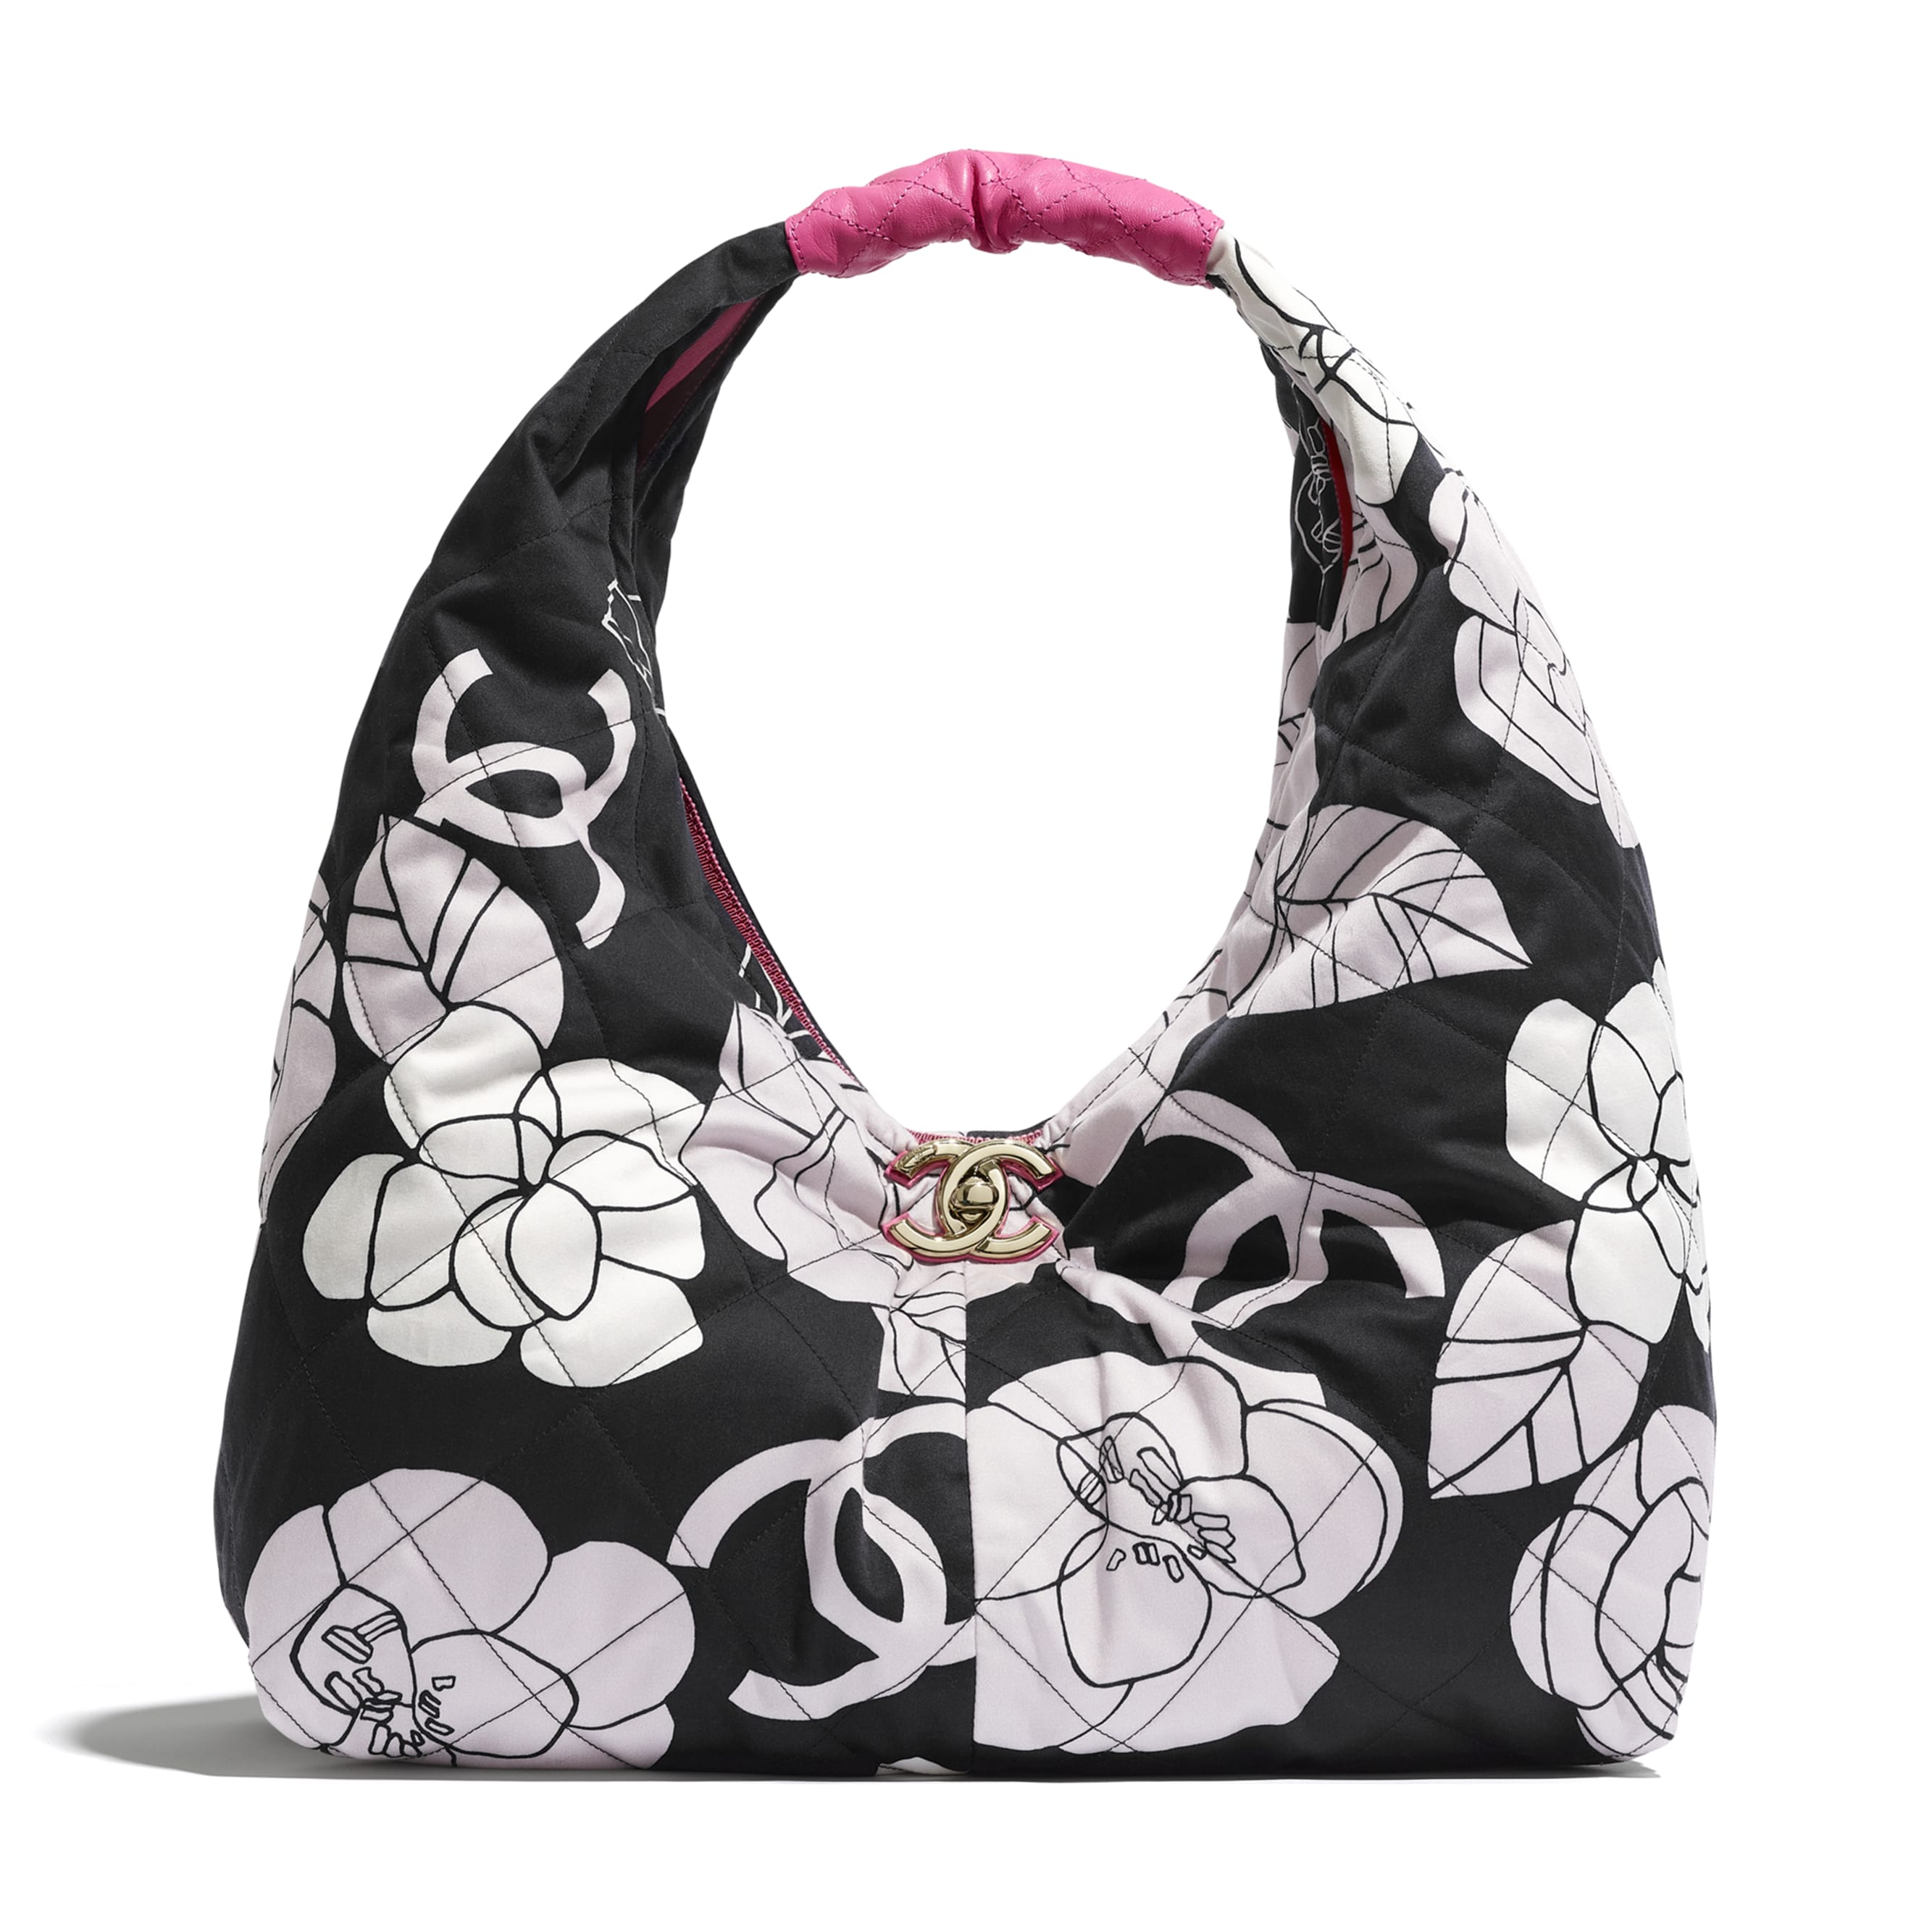 Large Hobo Bag - White, Black & Pink - Cotton Canvas, Calfskin & Gold-Tone Metal - CHANEL - Default view - see standard sized version